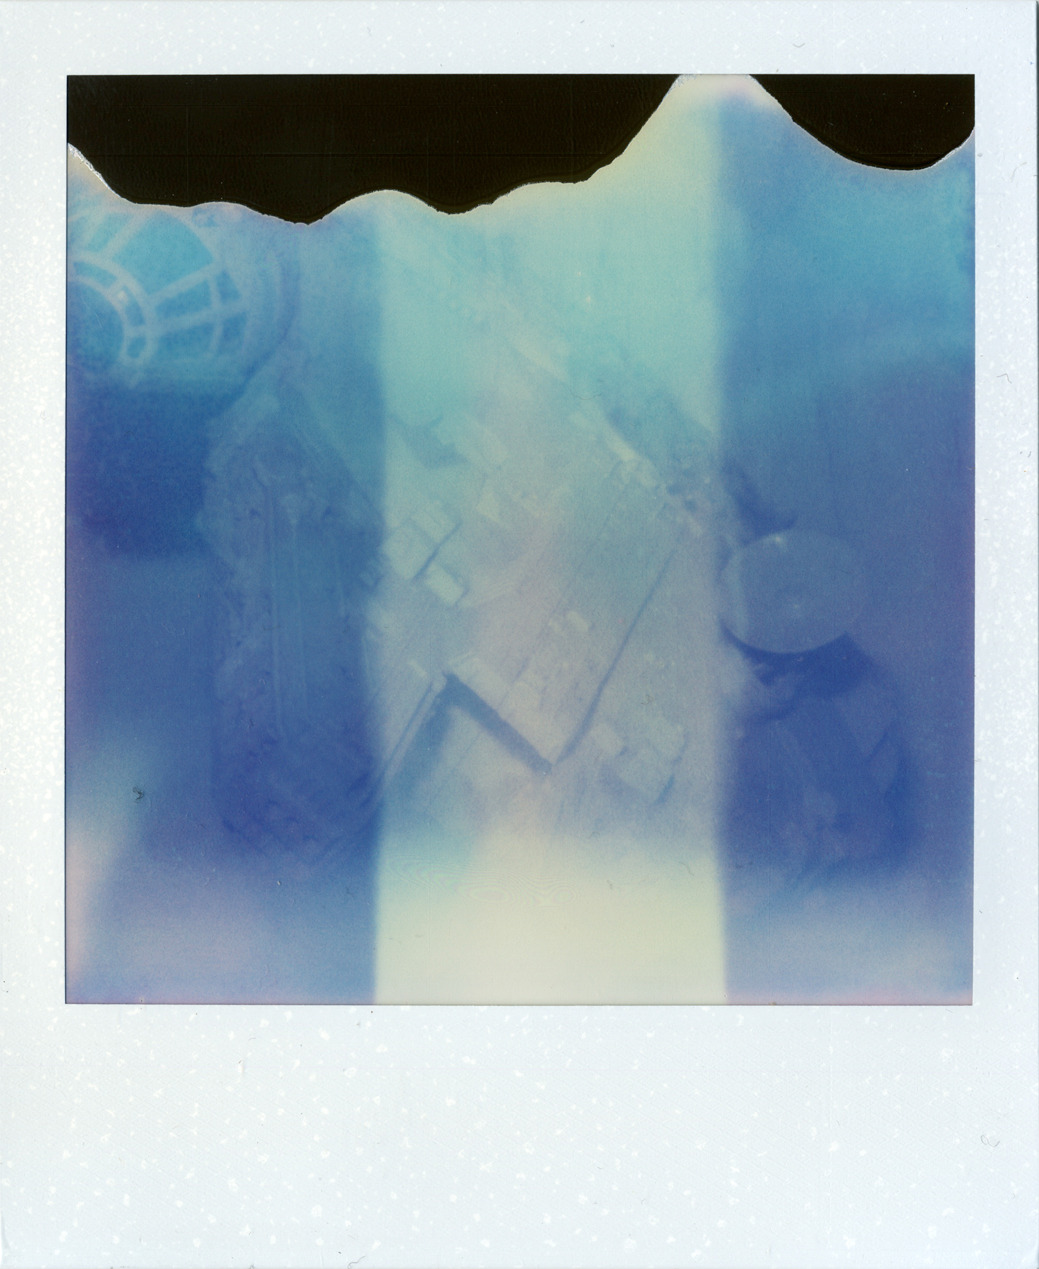 out of the blue  Camera: Polaroid Sx-70 Sonar Autofocus; Film: Impossible Project PX 70 PUSH